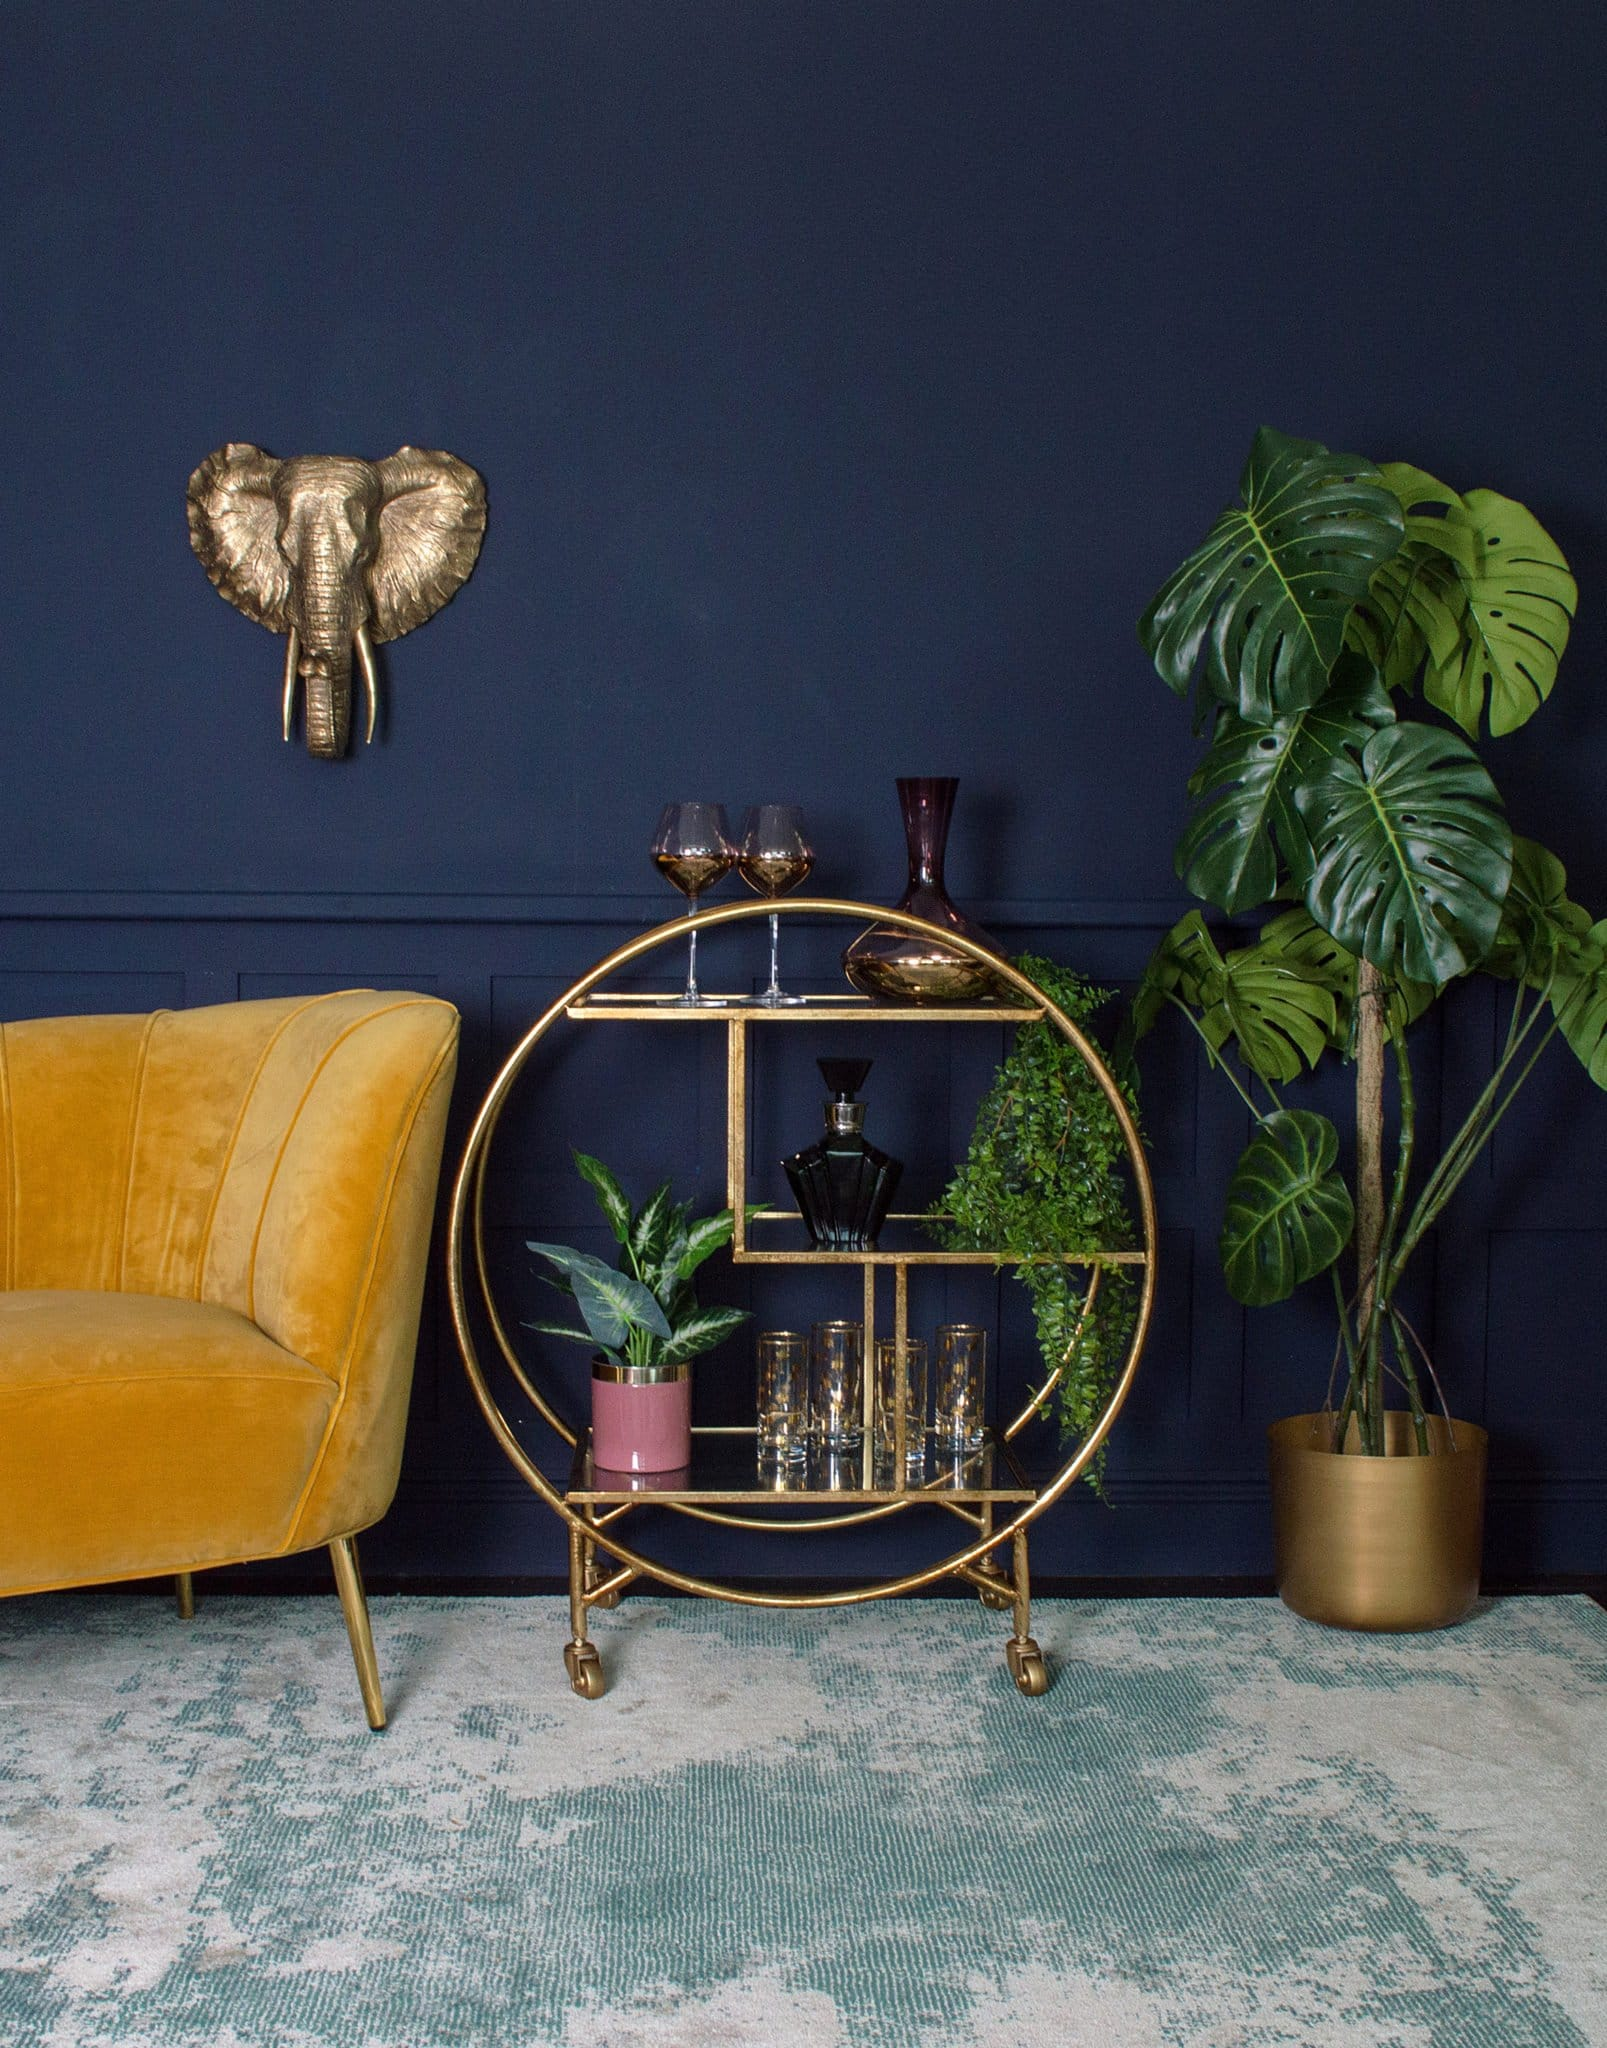 My Interior Design Trend Predictions For 2019 - Bar Carts